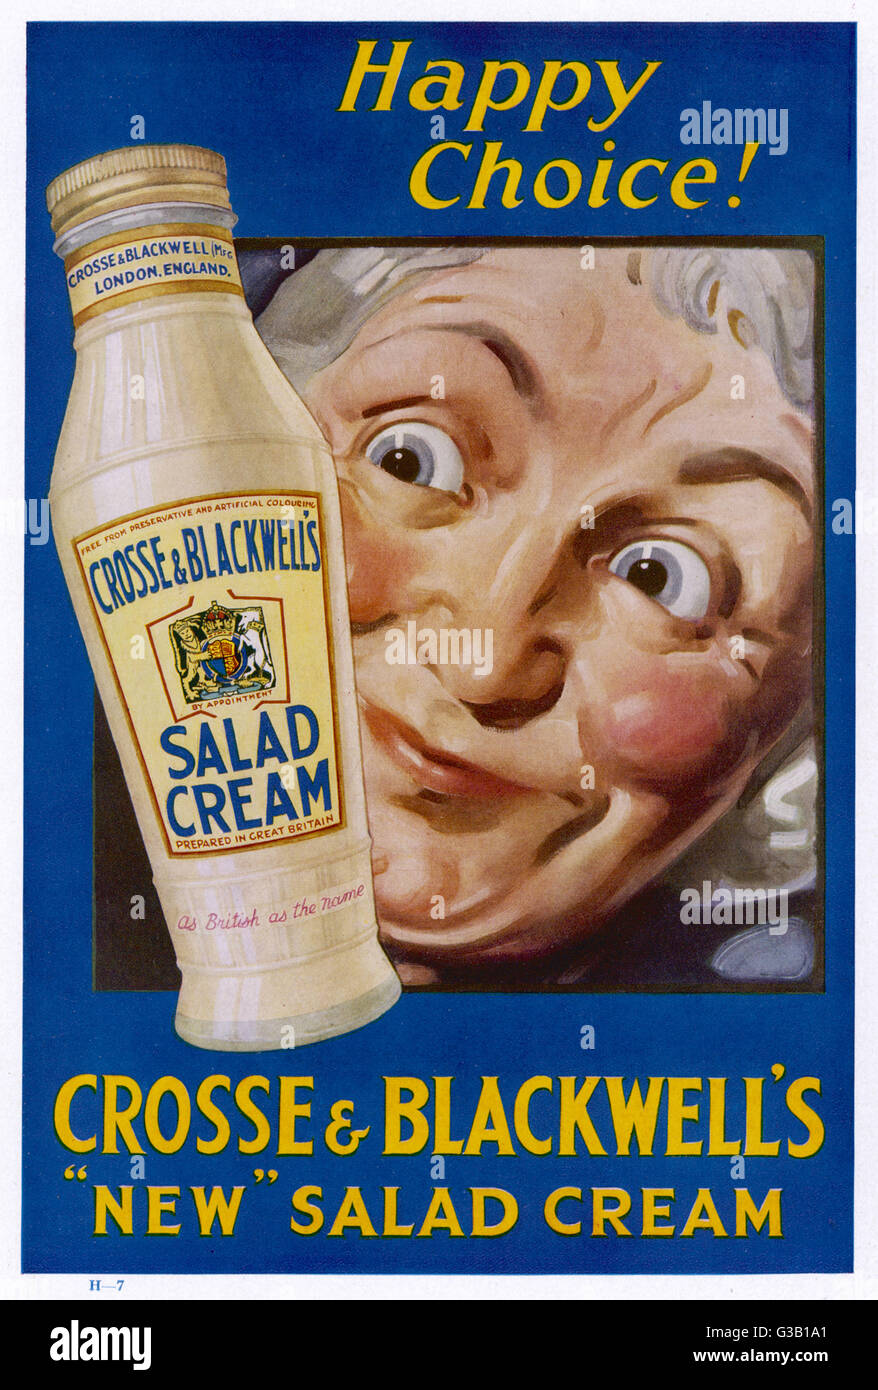 Image result for CROSS AND BLACKWELL 1950S